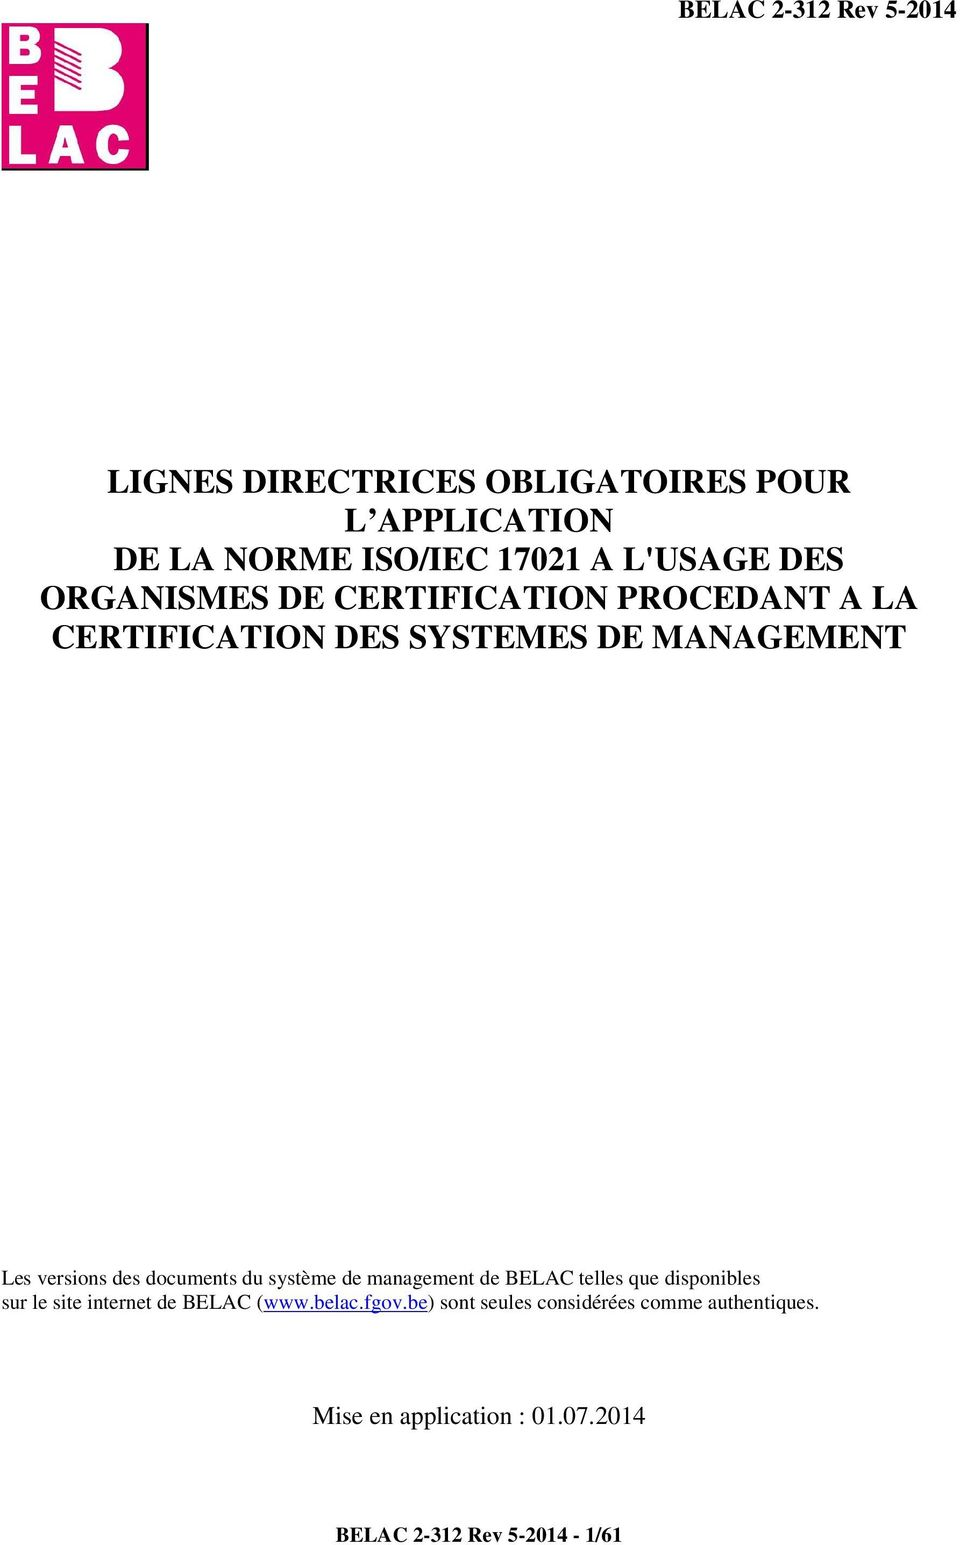 documents du système de management de BELAC telles que disponibles sur le site internet de BELAC (www.belac.